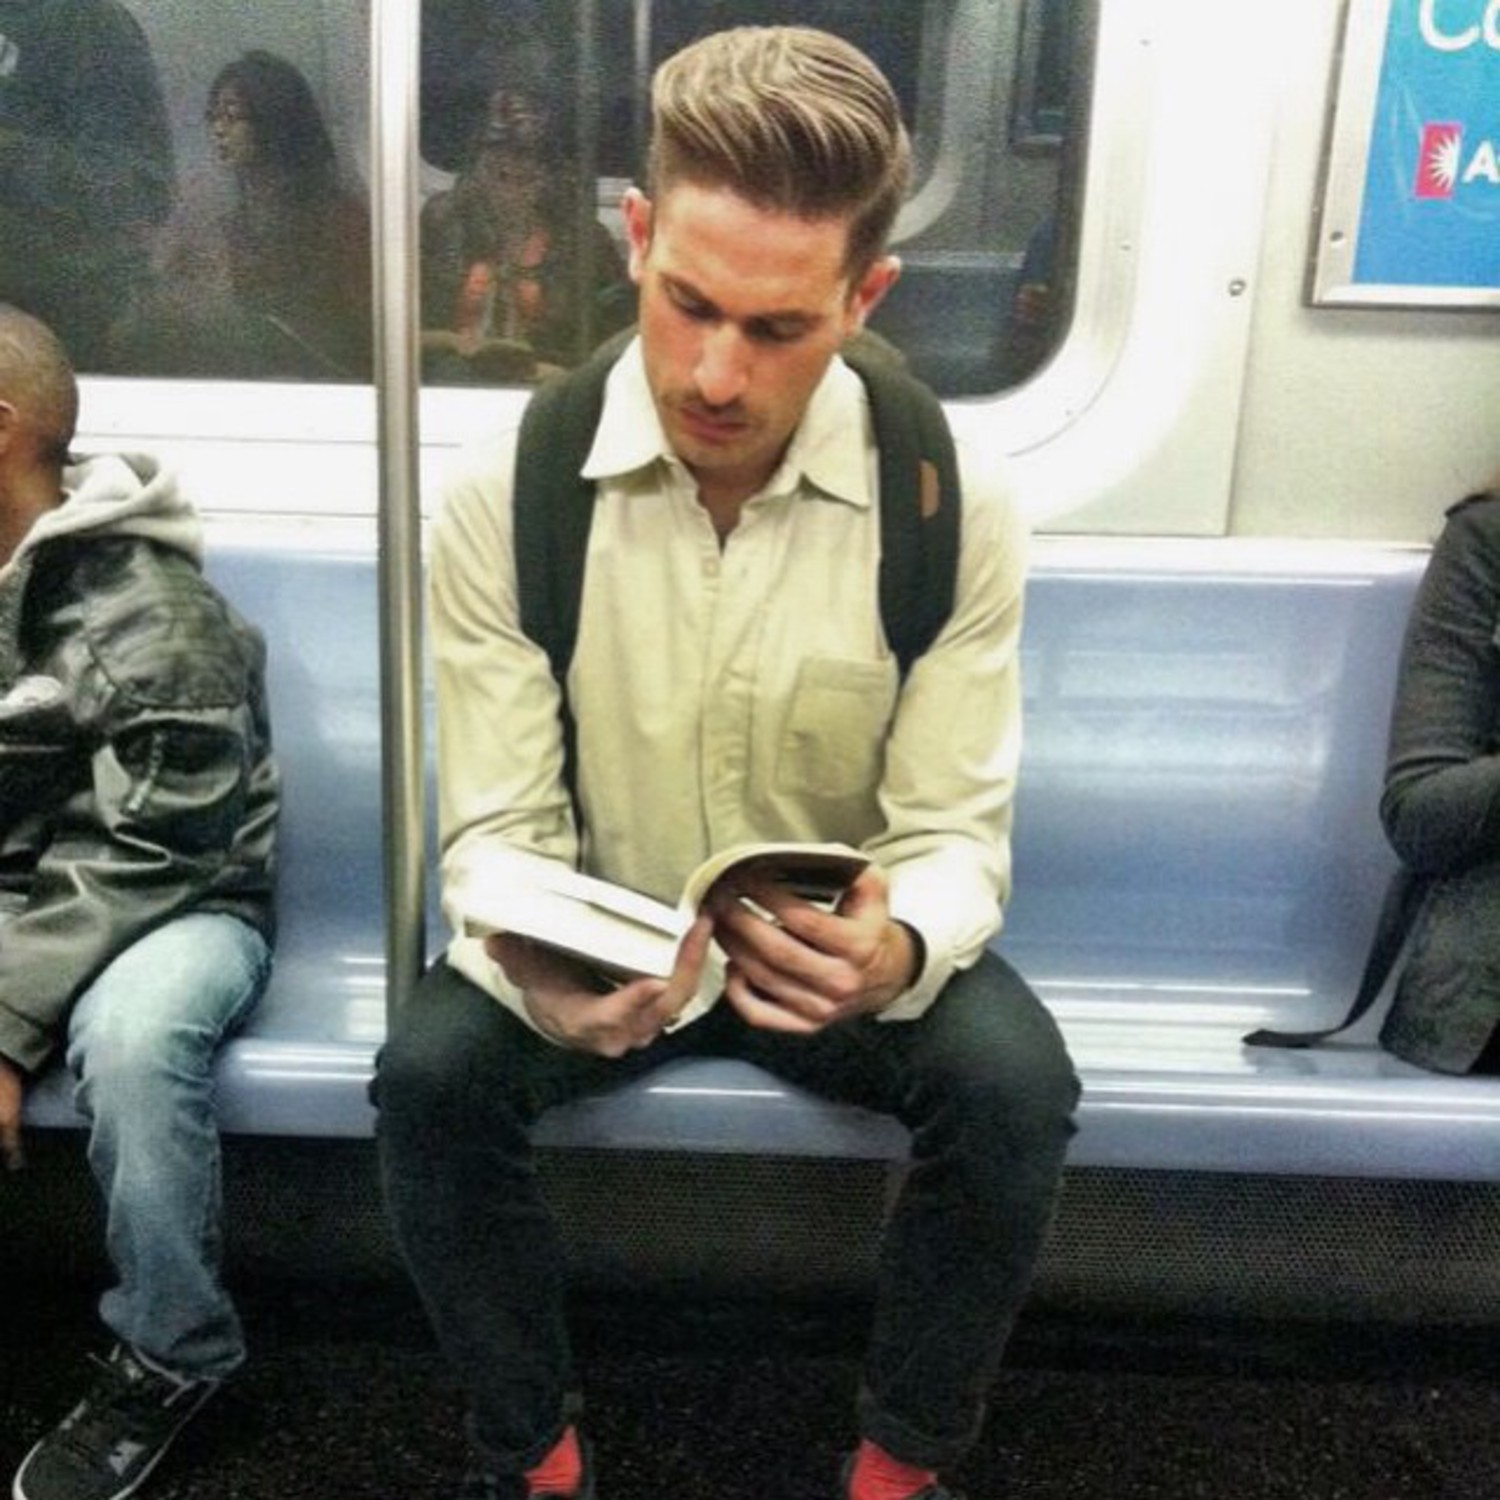 Whoa. This smoldering smokeshow stepped right off the pages of GQ and into my heart. That manly moustache almost makes me forget he has better hair than I do. When he puts down that book I hope he'll give me some tips #butjustthetips #hotdudesreading